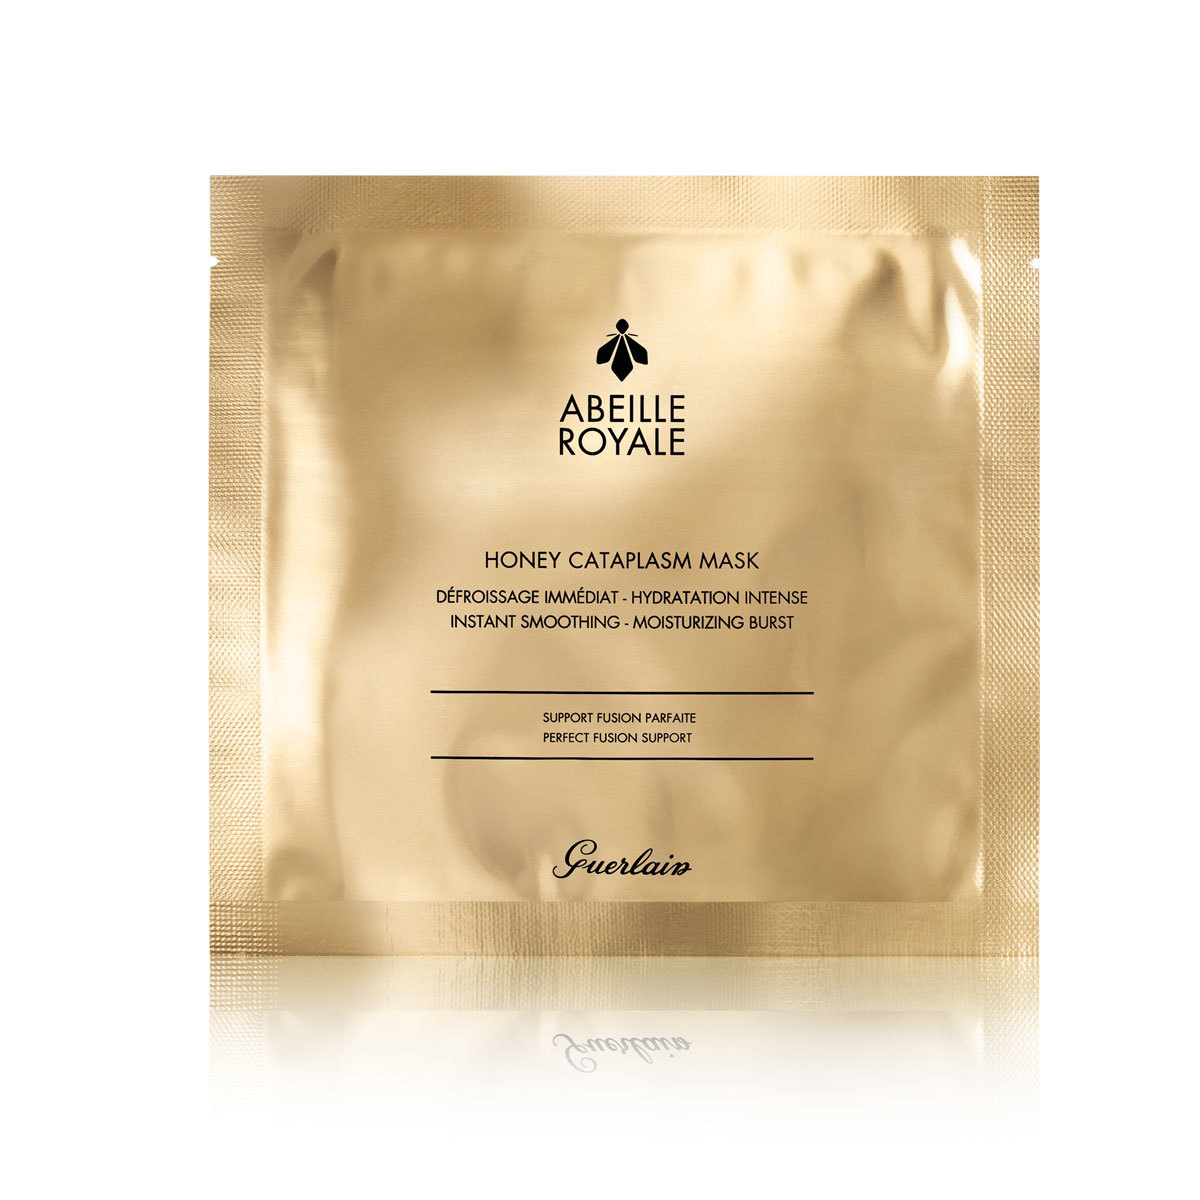 Honey Cataplasm Mask Abeille Royale, Guerlain